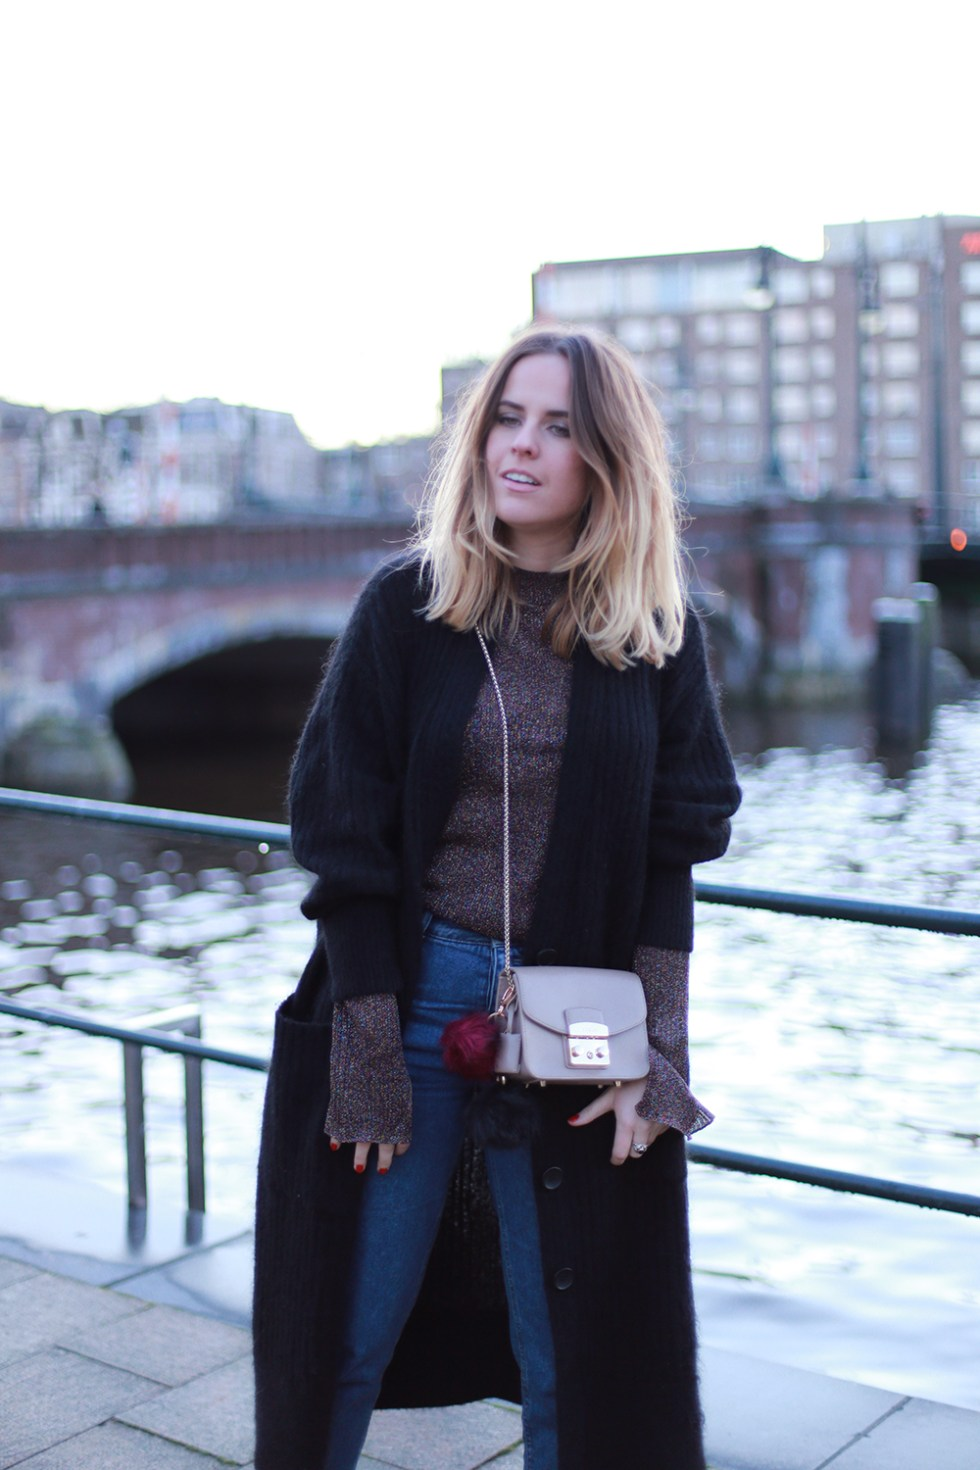 billie-rose-blog-outfit-hm-trend-cardigan-topshop-boots-amsterdam-mom-jeans-3